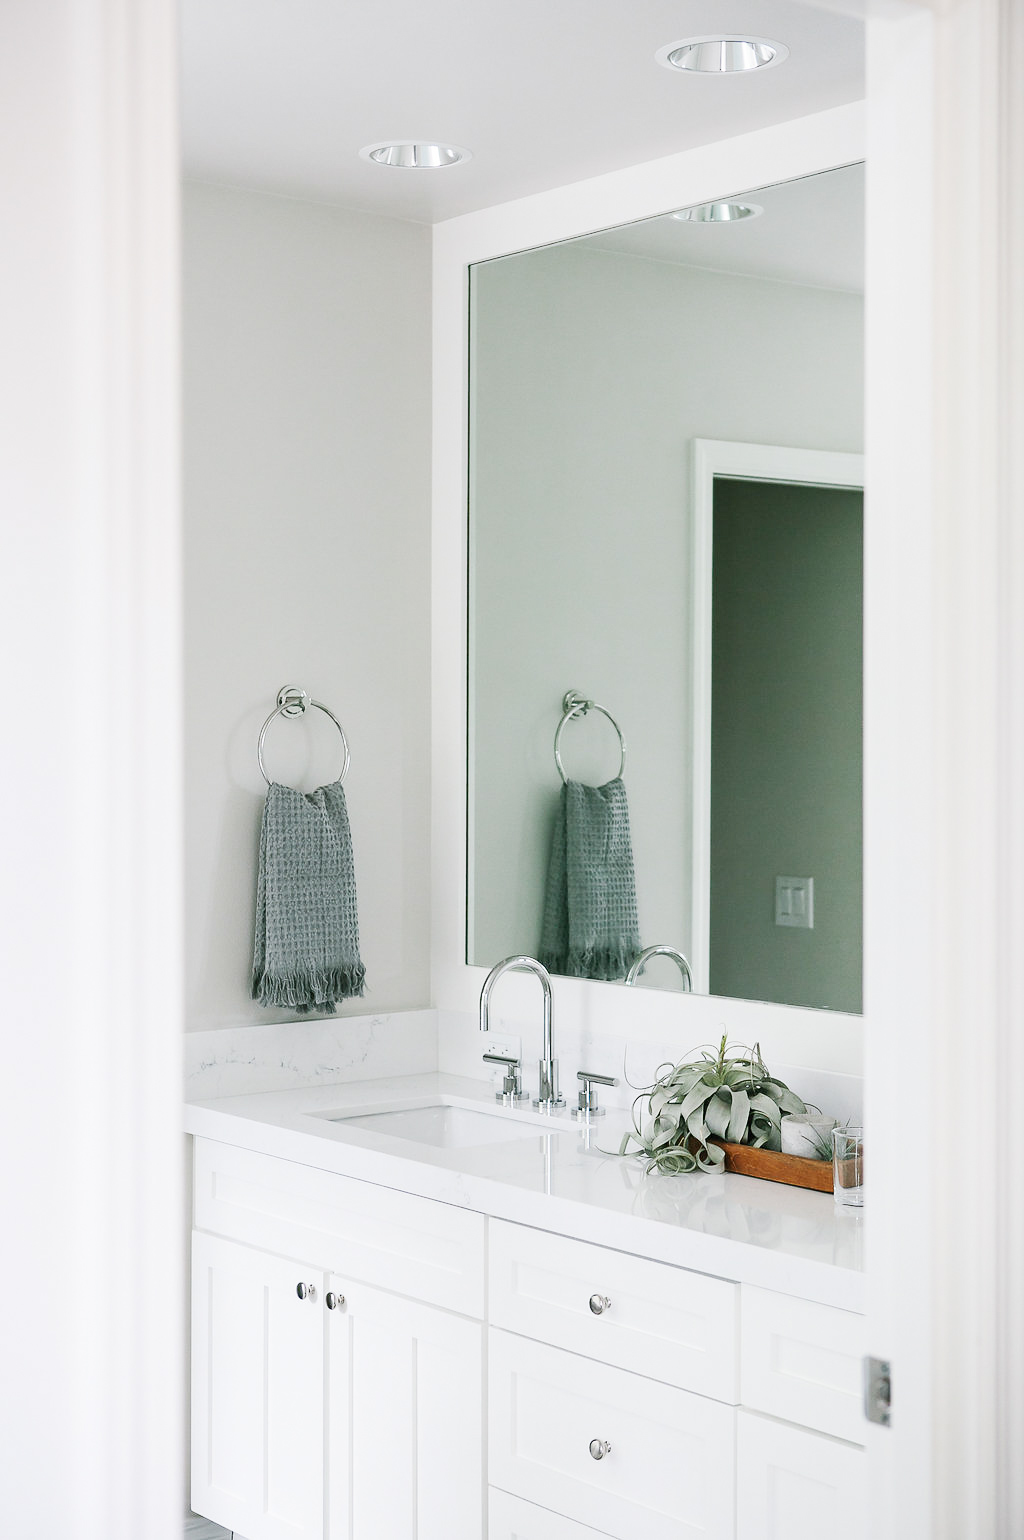 White master bath double vanity with under mount sinks.